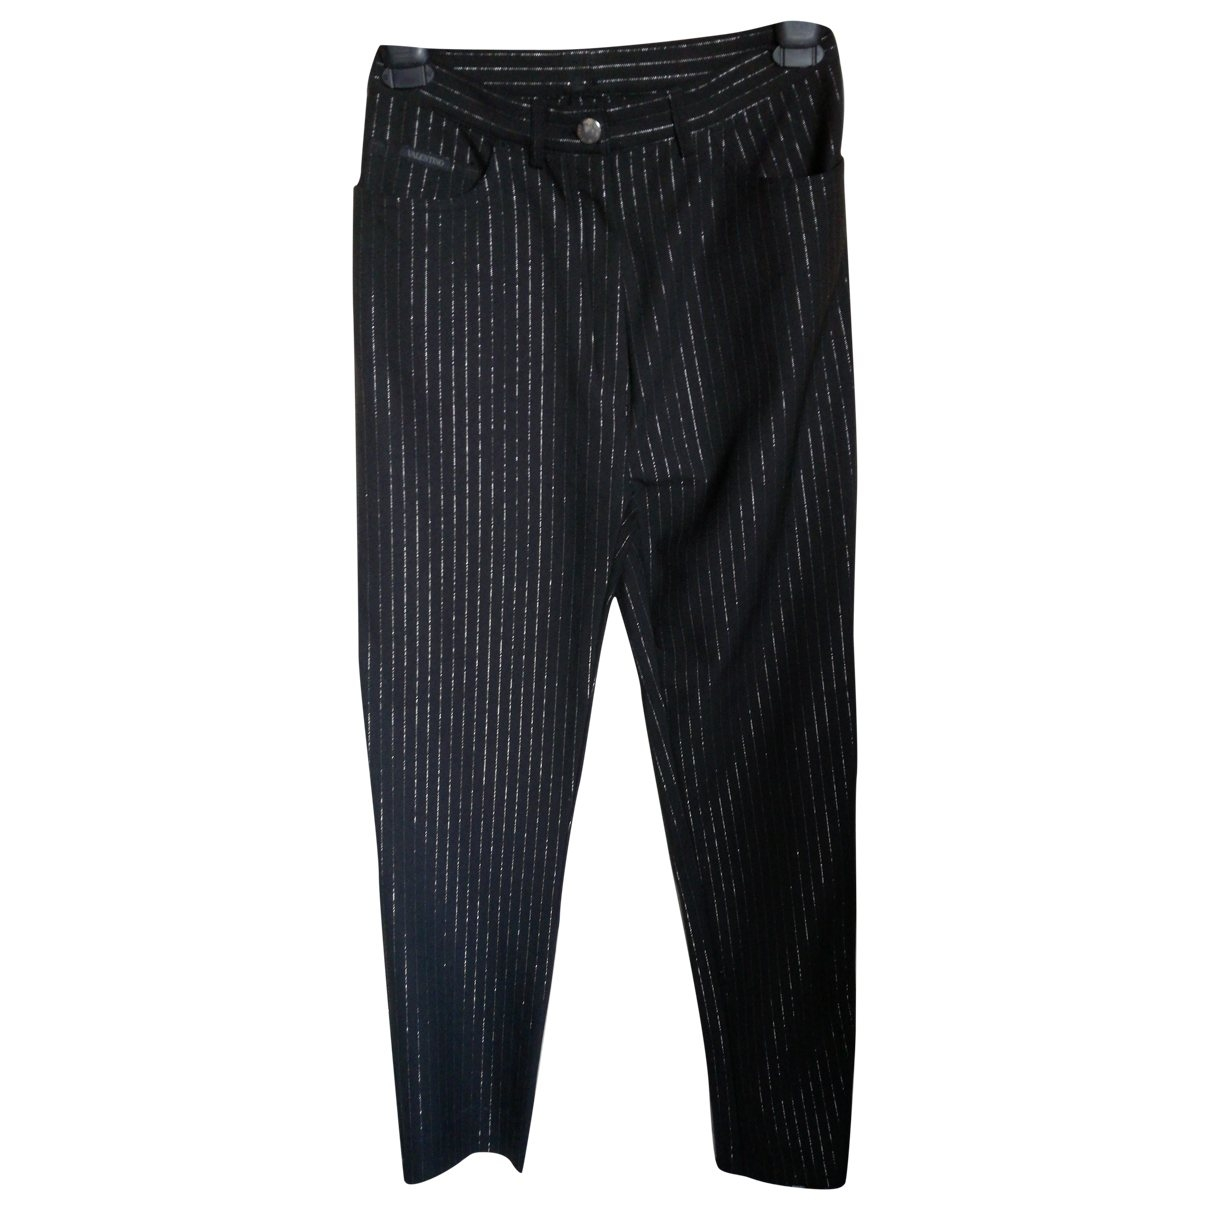 Valentino Garavani \N Black Trousers for Women 44 IT